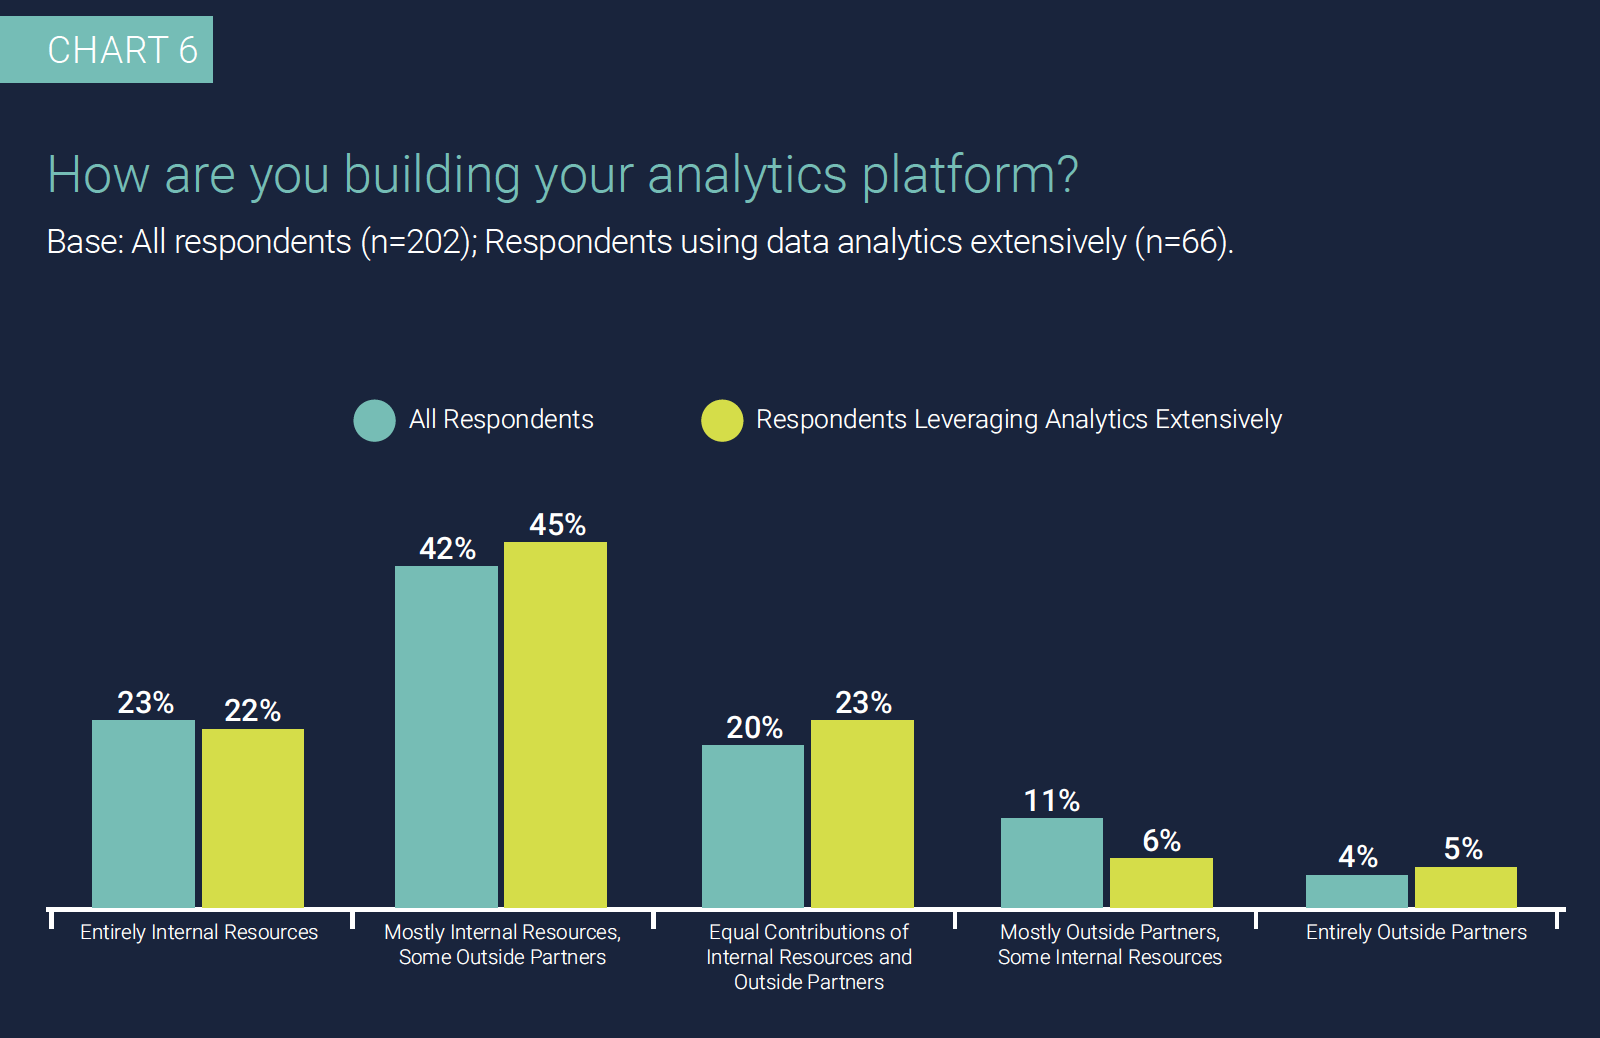 Chart 6: How are you building your analytics platform? Base: All respondents (n=202); Respondents using data analytics extensively (n=66).